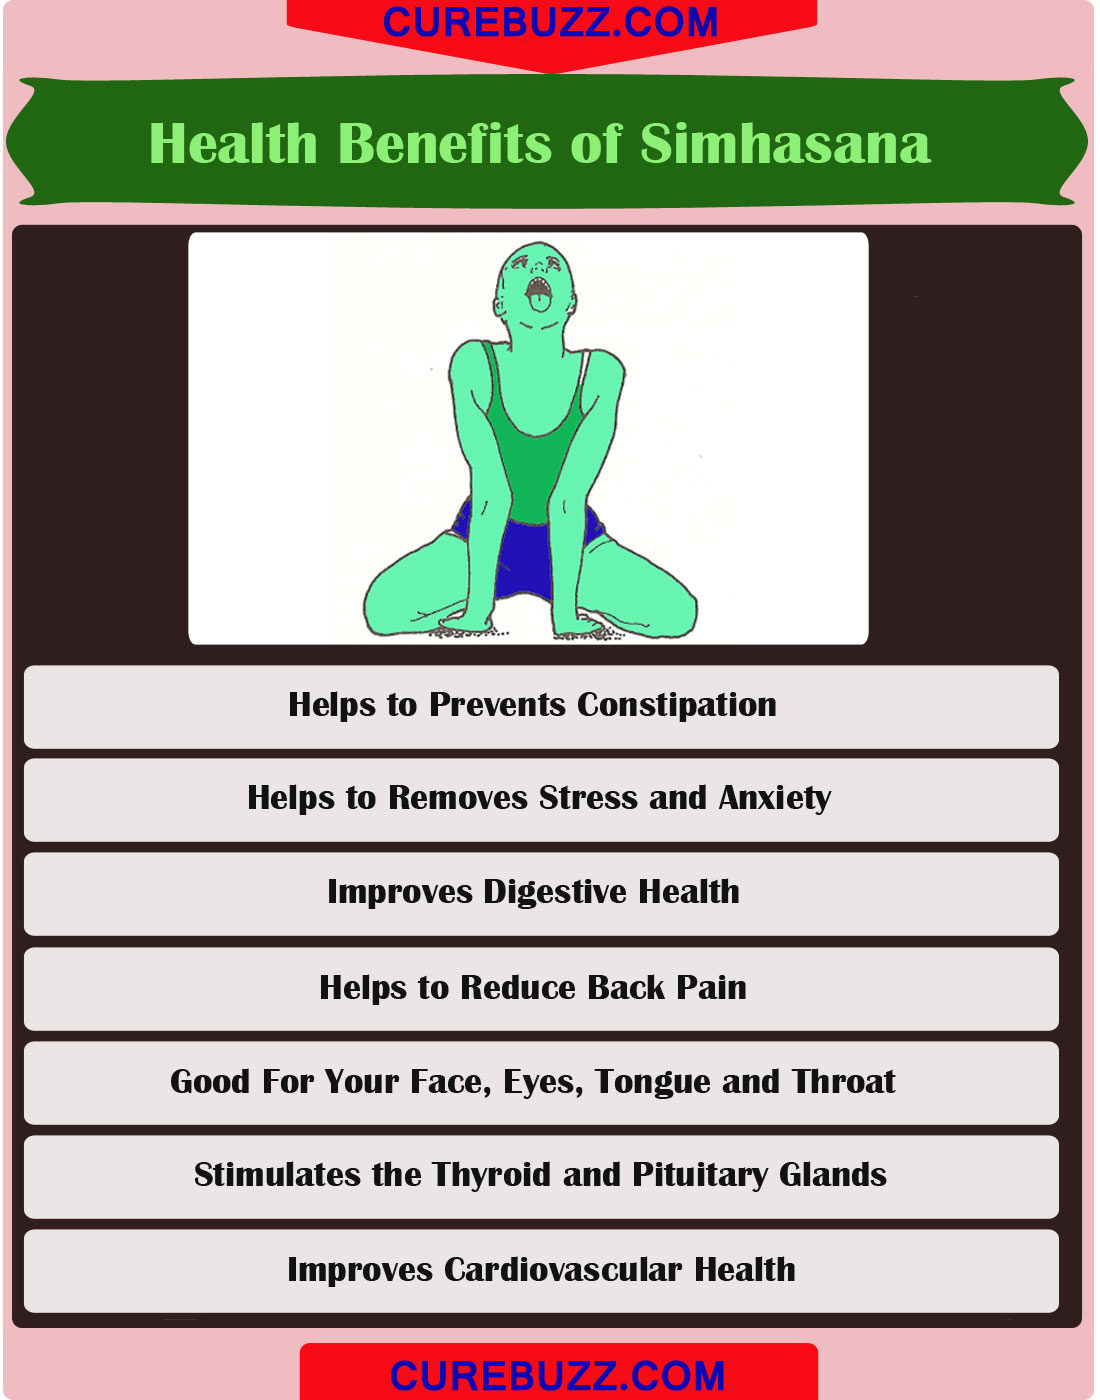 Health Benefits of Simhasana